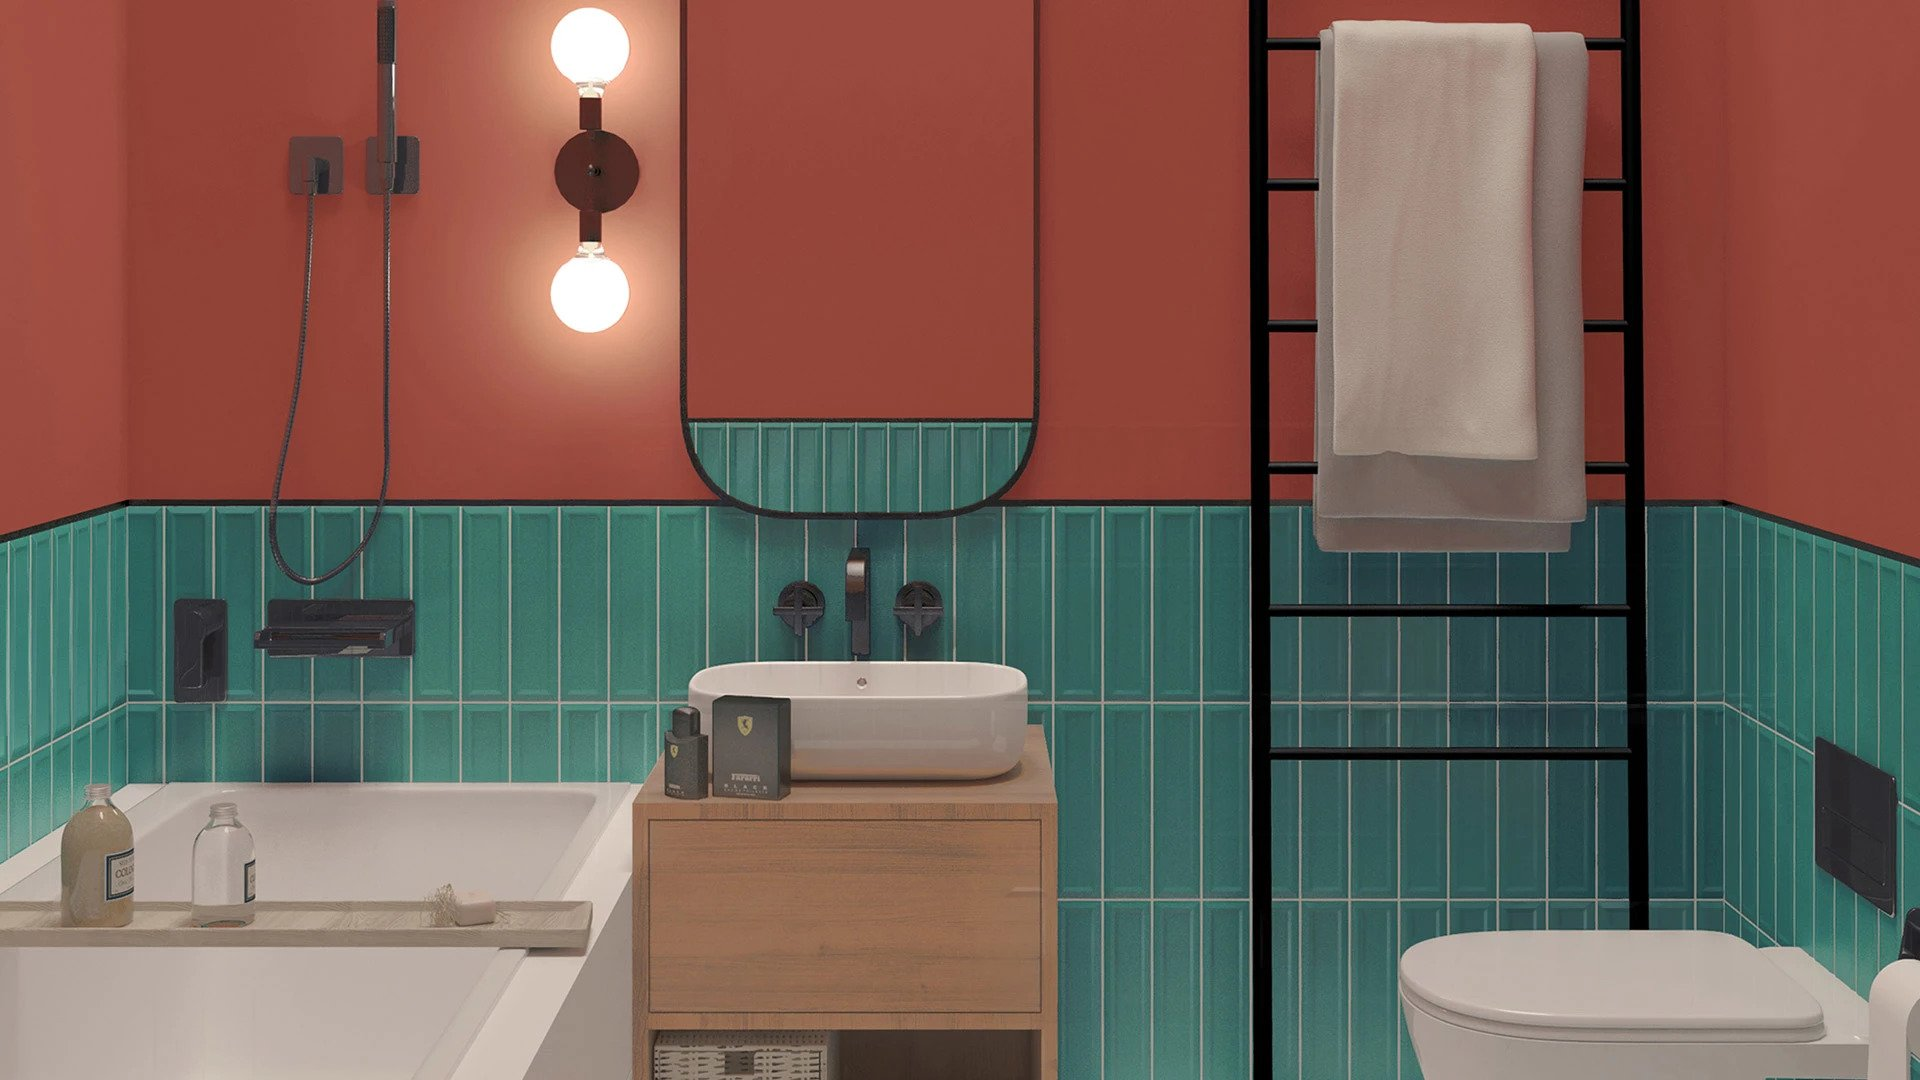 subway tiles a trend that never dies